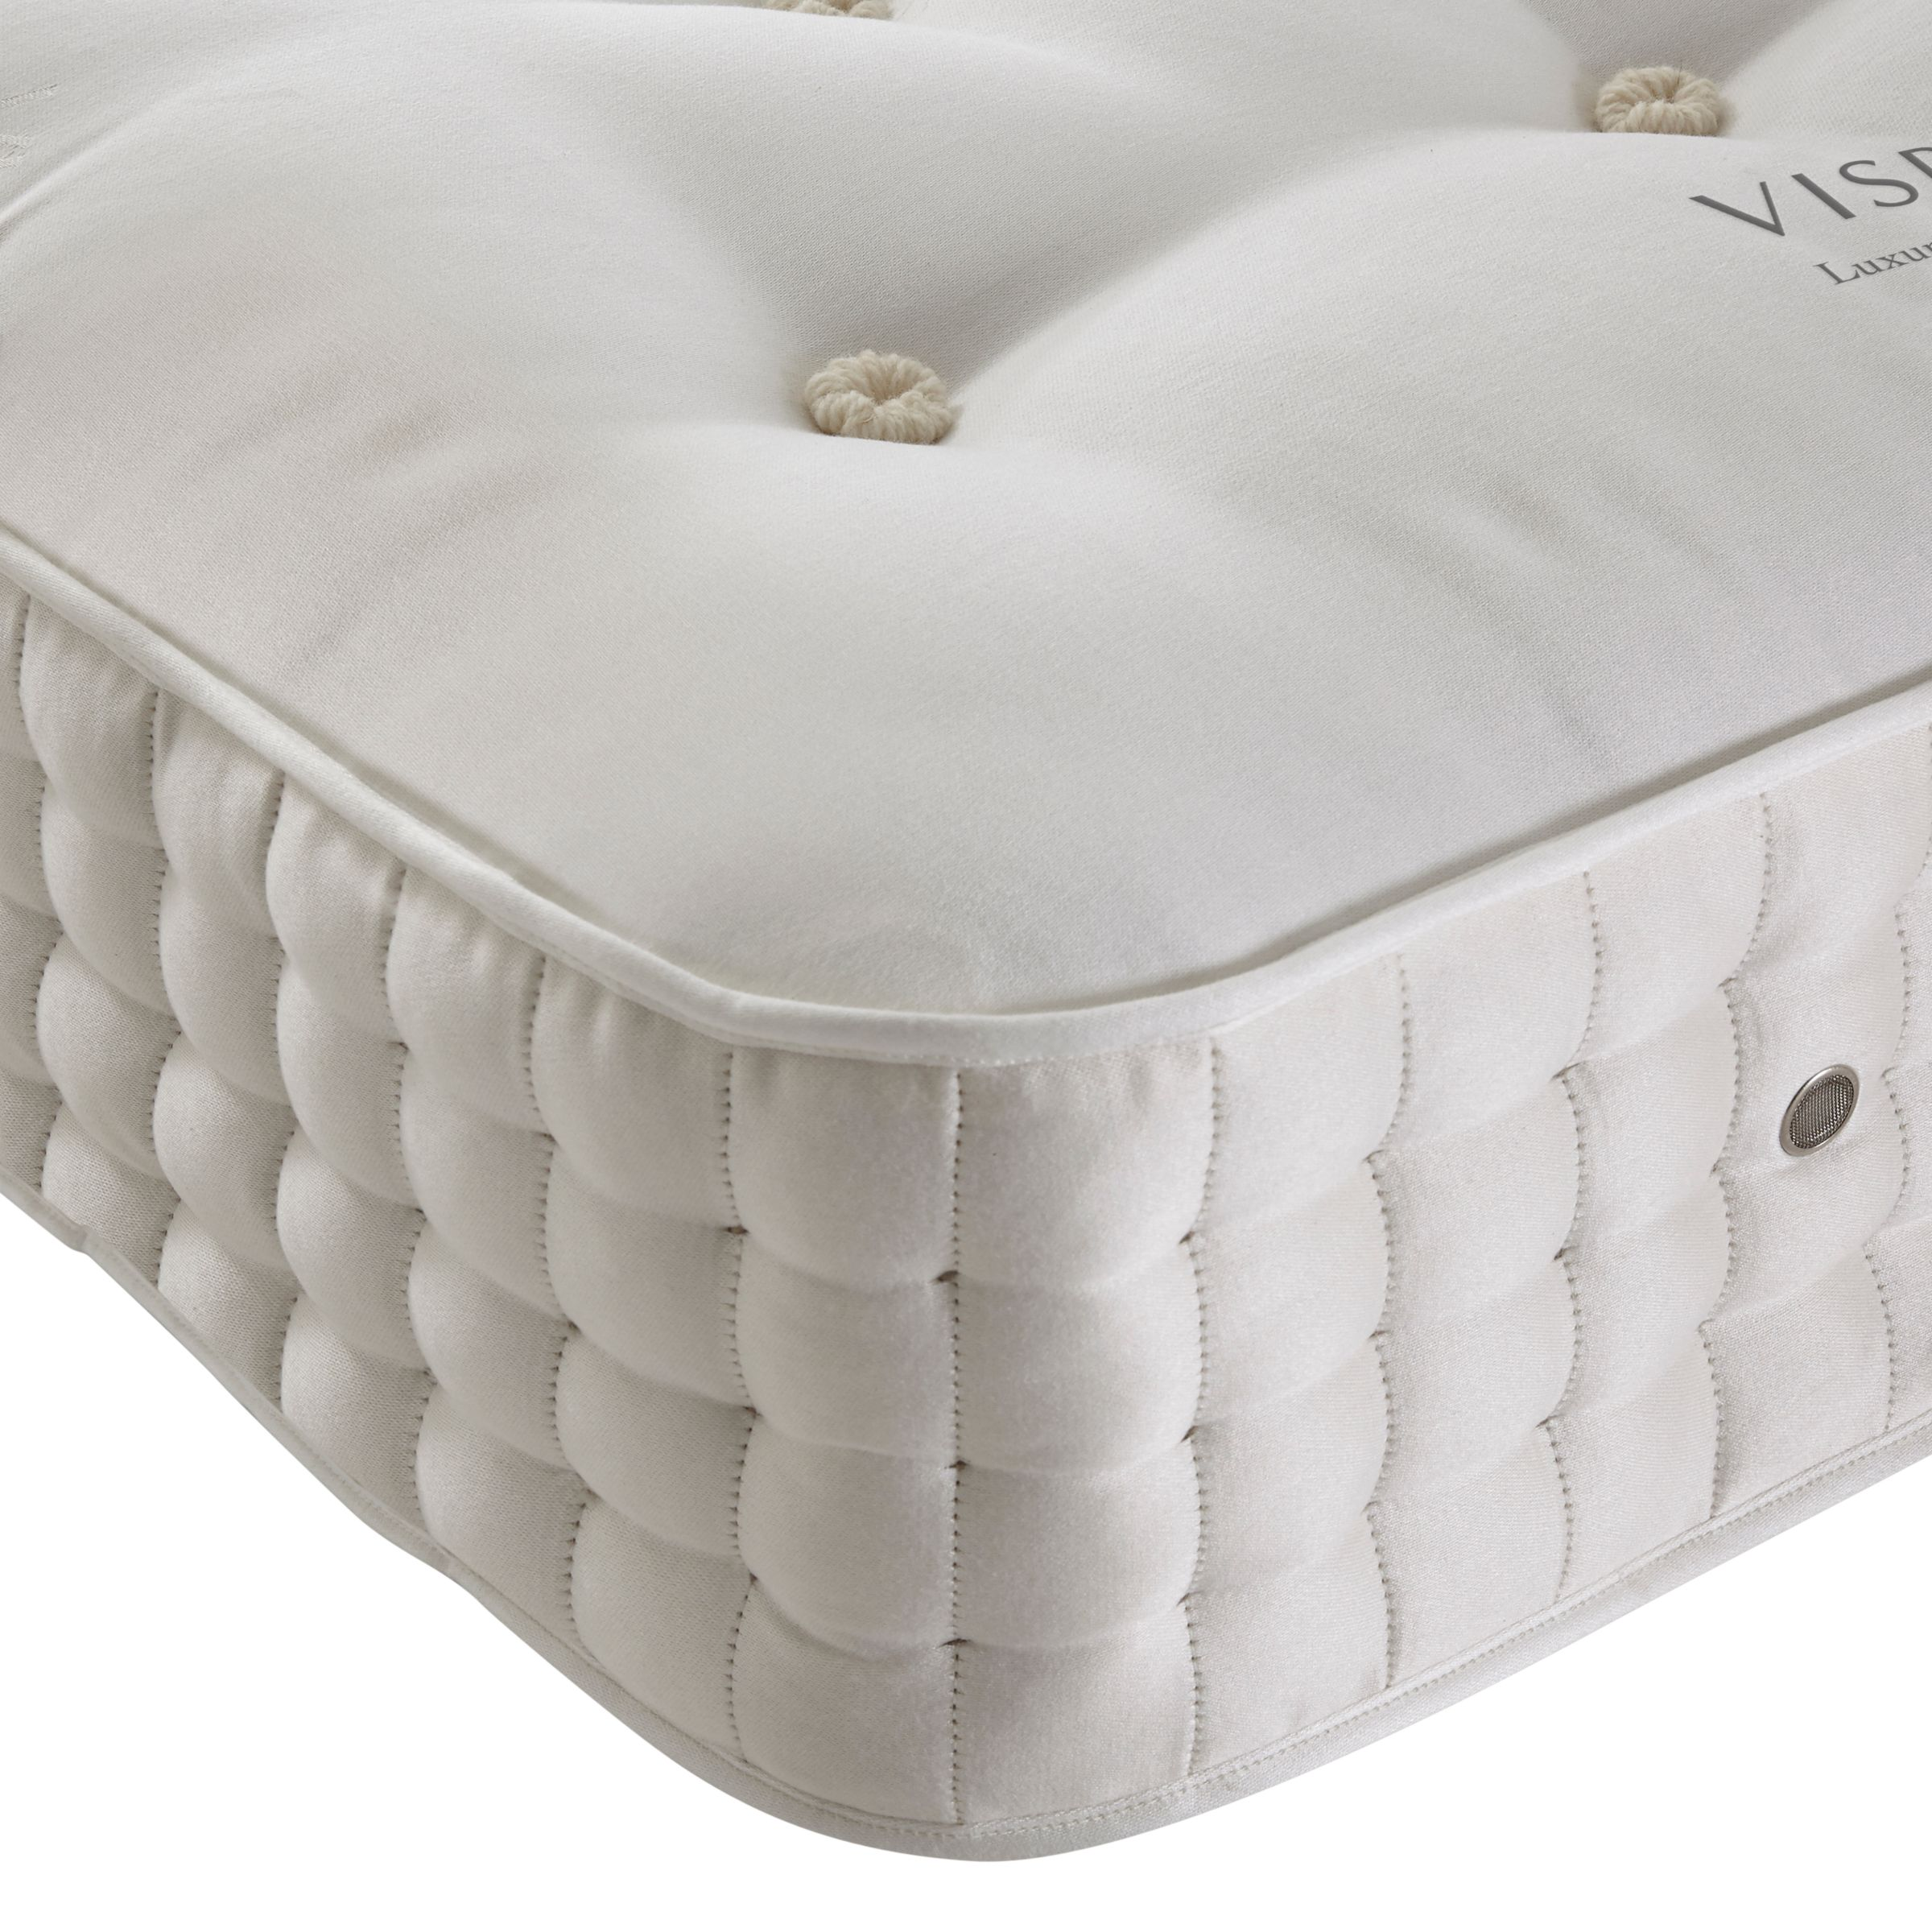 Vi-Spring Salcombe Superb Mattress, Large Emperor